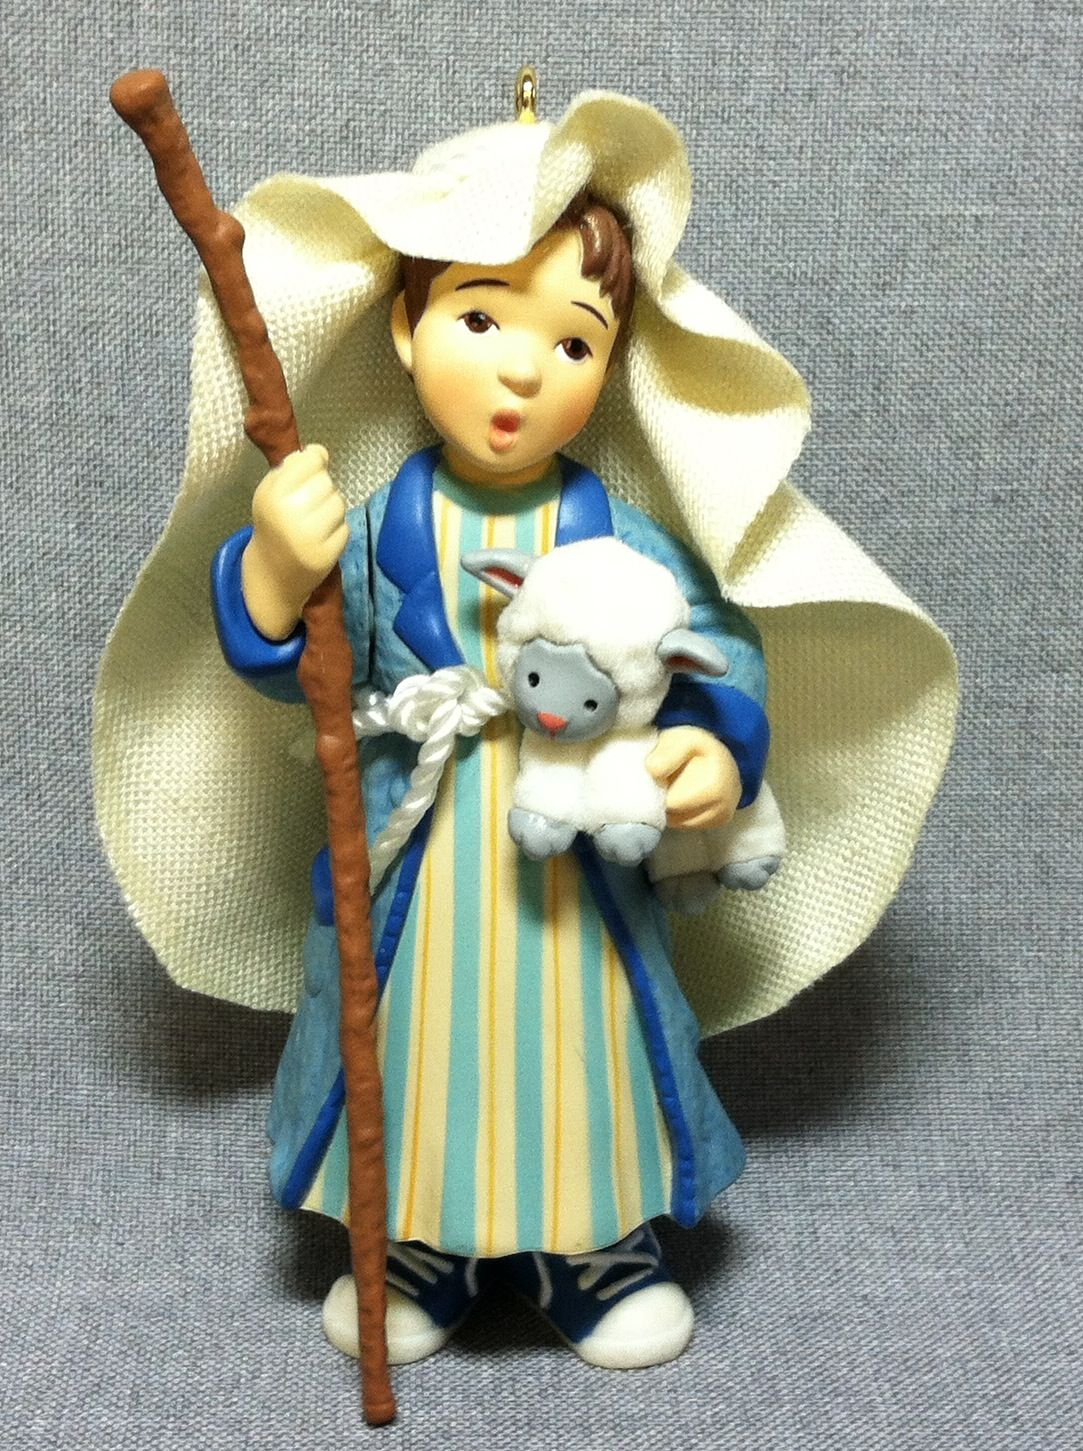 Sweetest Little Sheppard Hallmark 2004 (With images